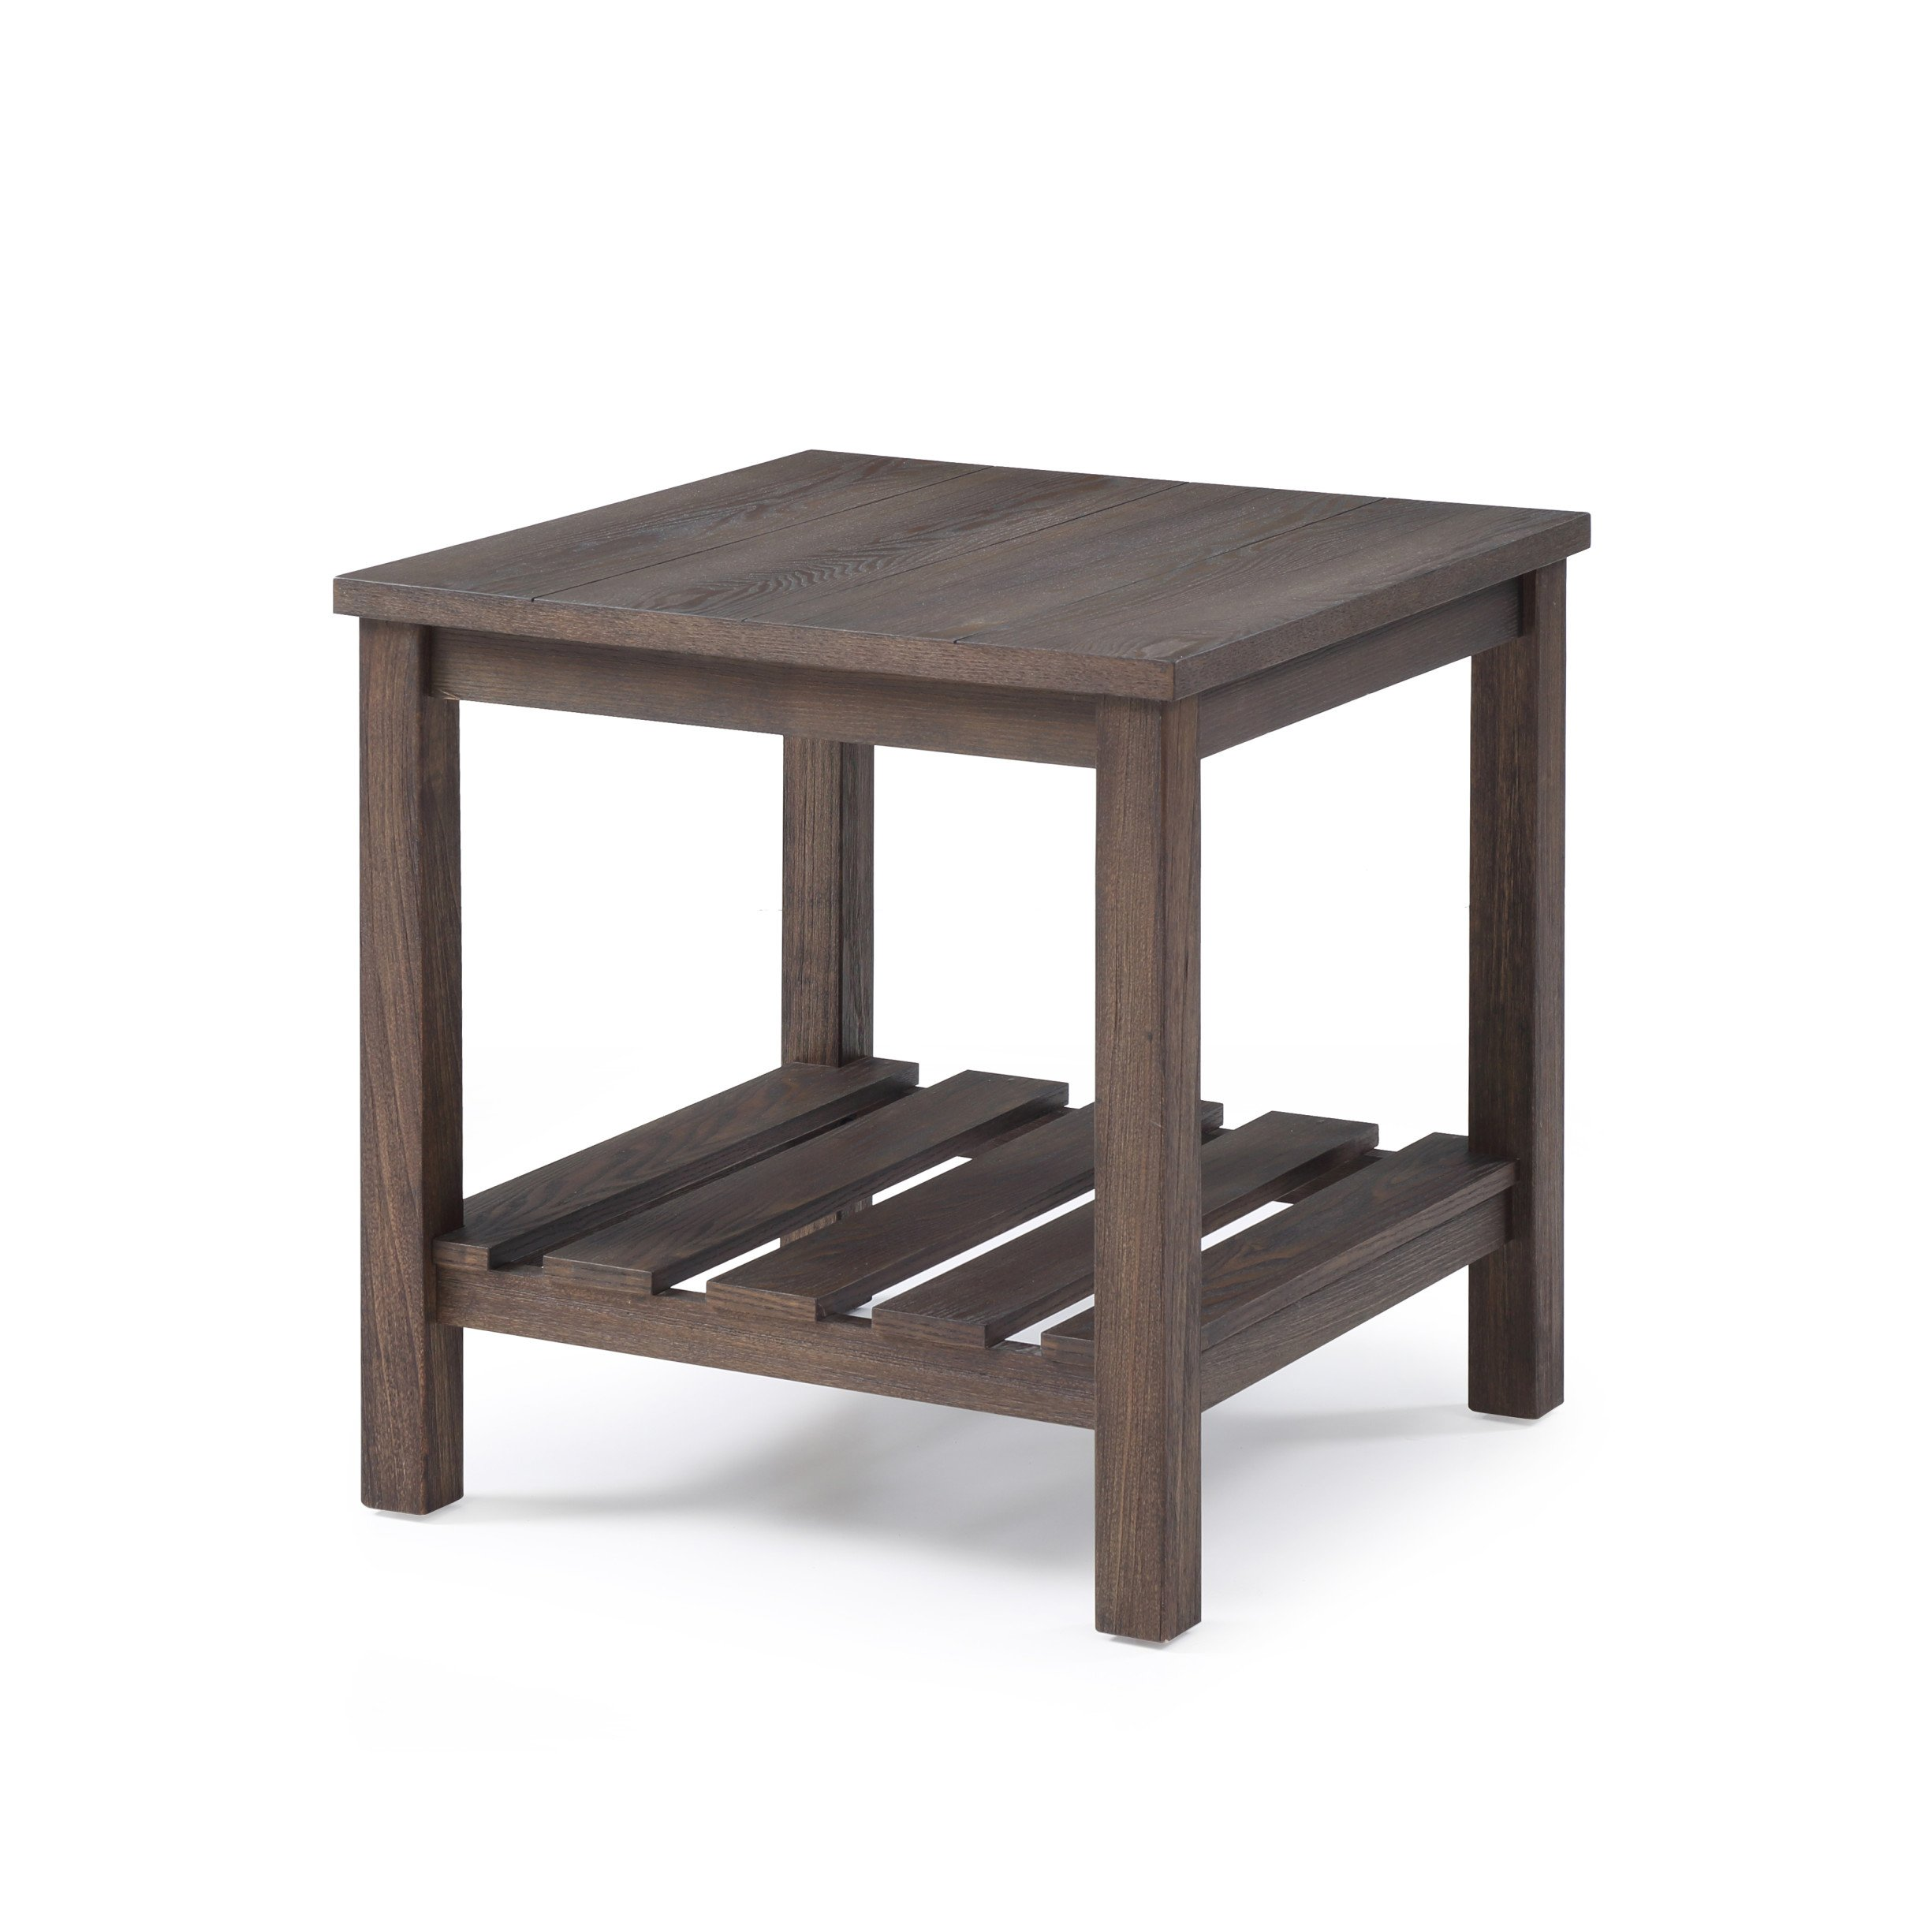 Emerald Home Furnishings T805-01 Wood Haven End Table Occasional Collection, Standard, Dark Brown by Emerald Home Furnishings